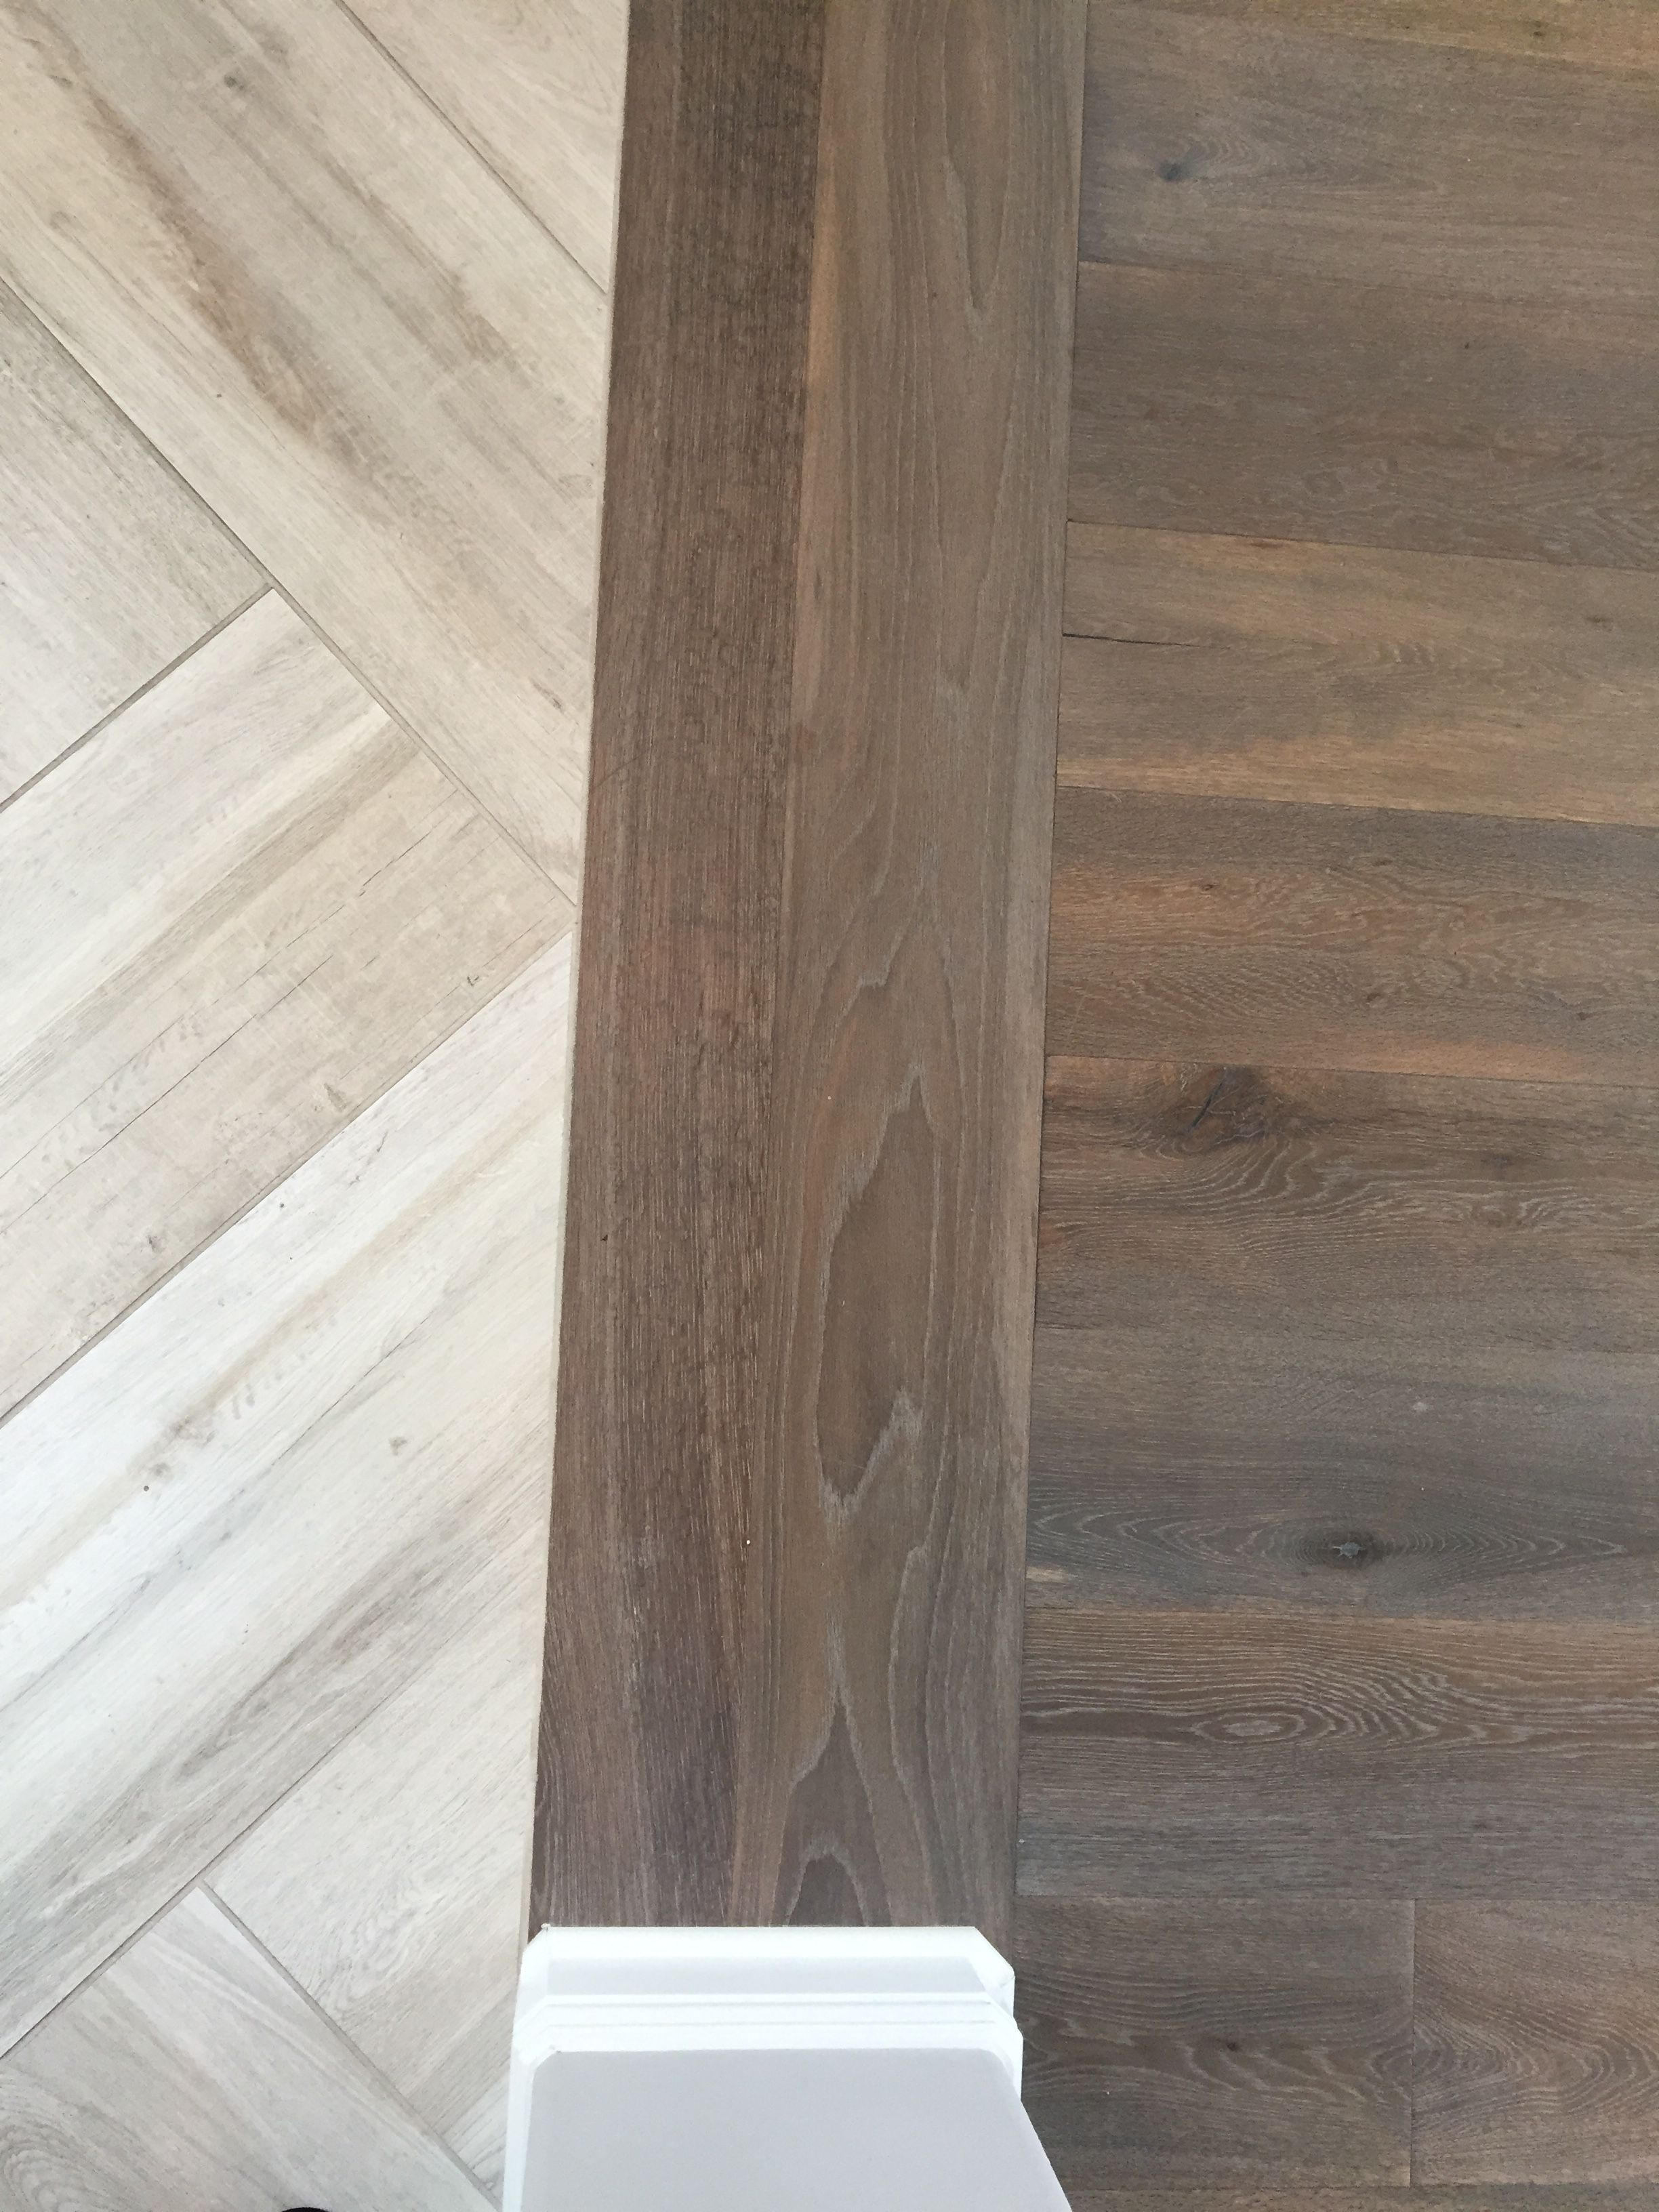 Floor Transition Laminate To Herringbone Tile Pattern Model